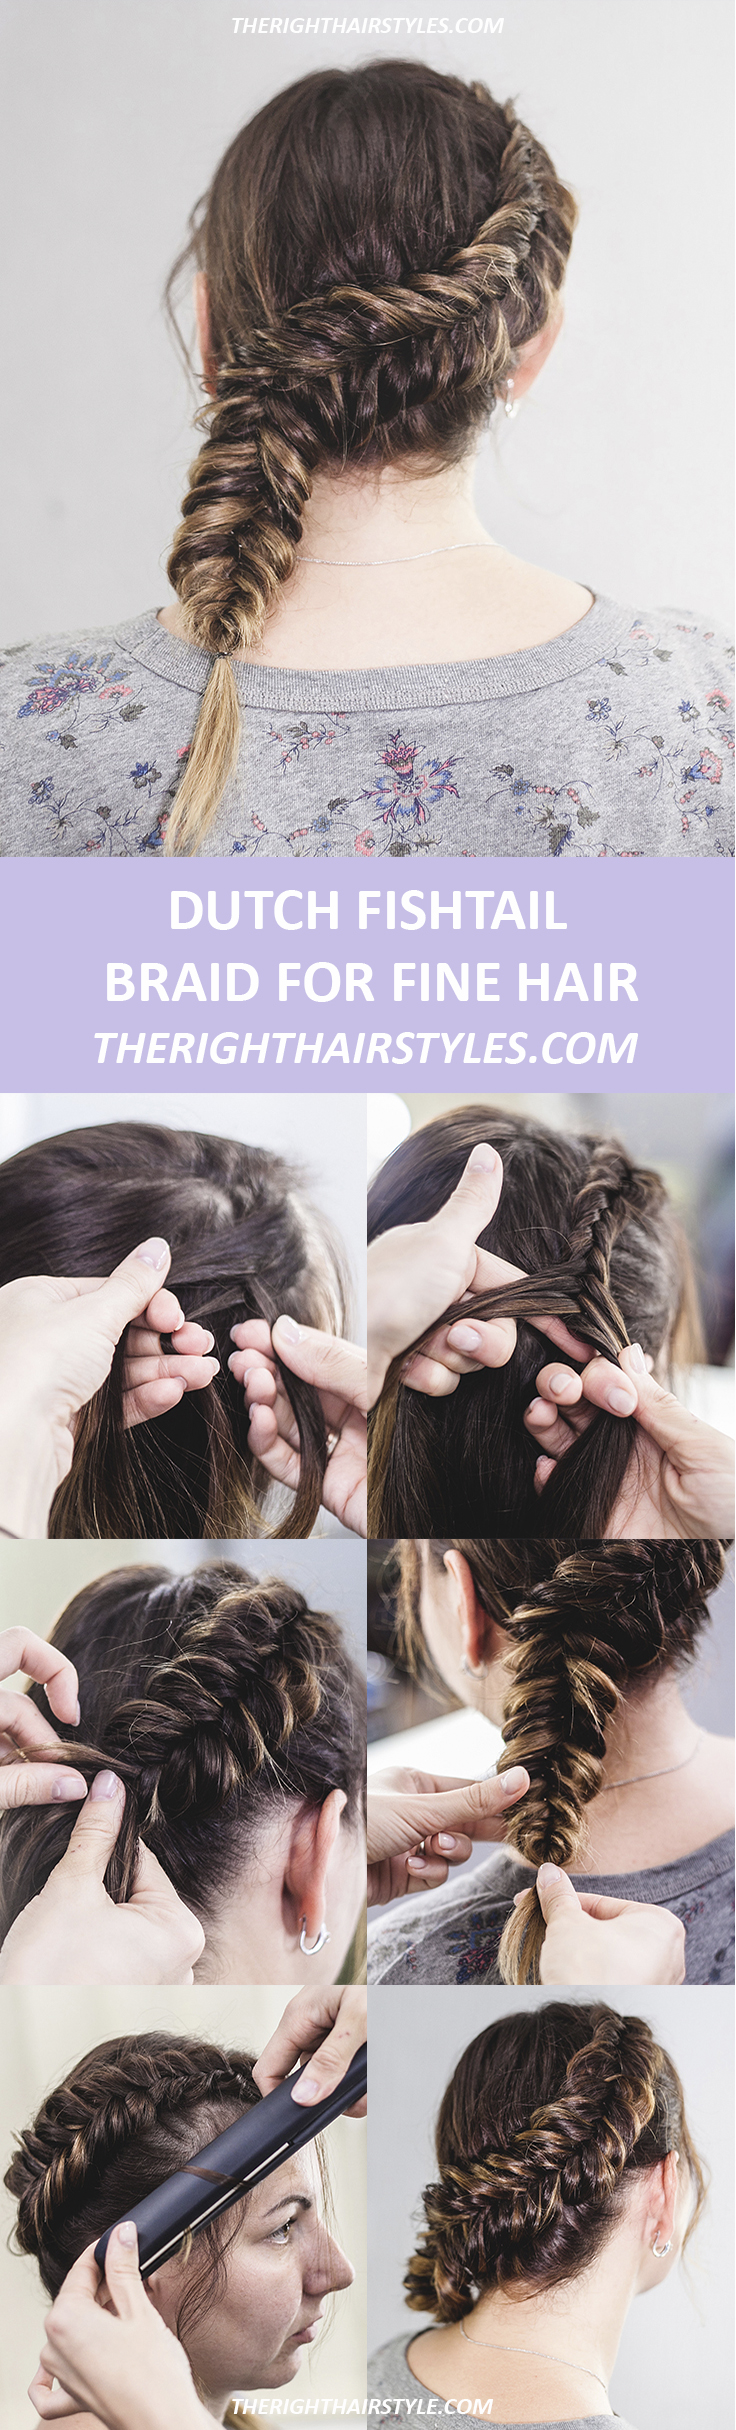 How to Make a Dutch Fishtail Braid in 5 Easy Steps